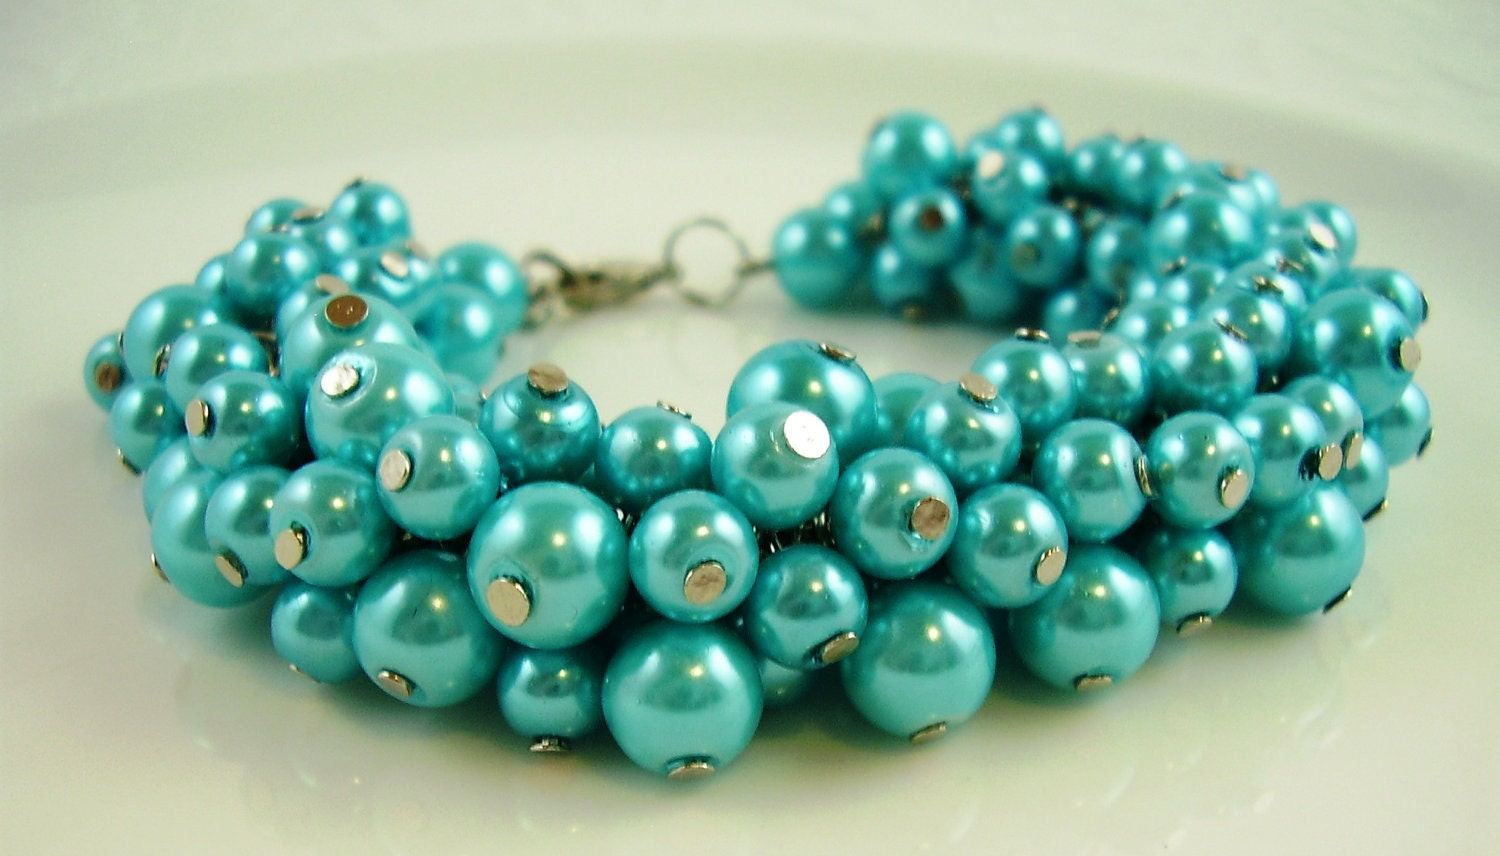 Vintage Turquoise Pearl Shaker Bracelet, Cha-Cha Bracelet, Mother's Day Gifts - myshininglights